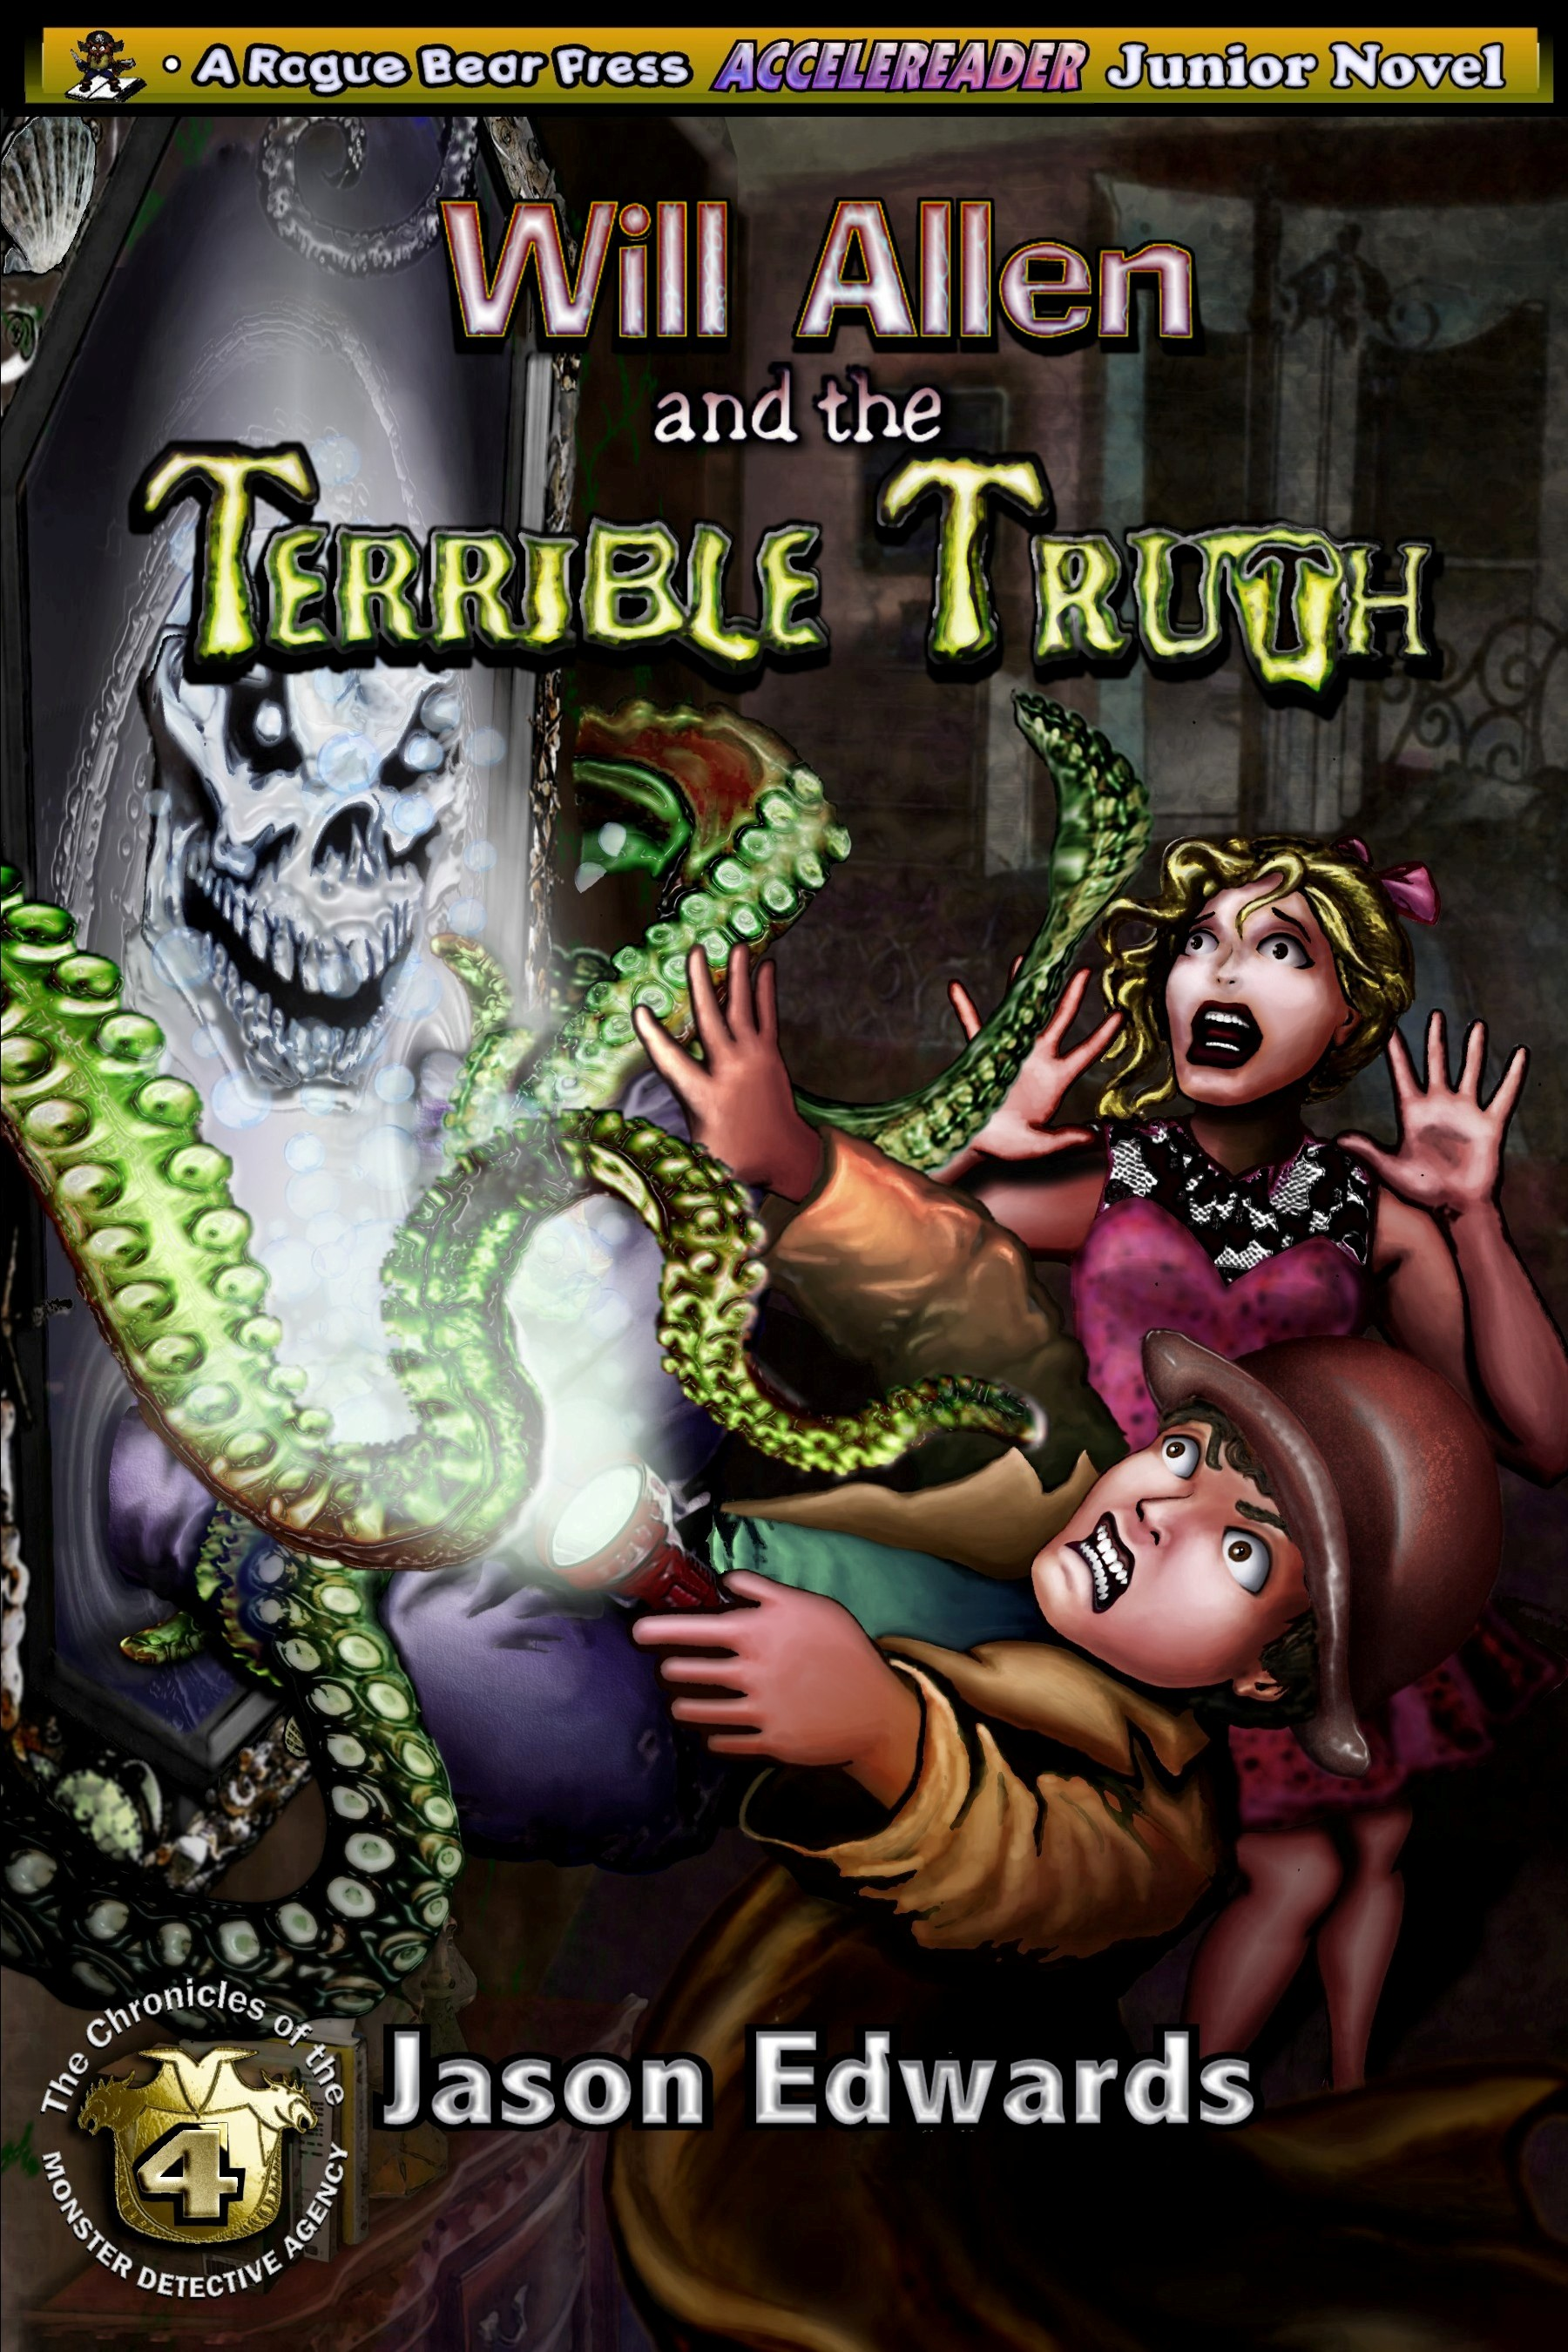 Terrible Truth cover rev 3-6-17